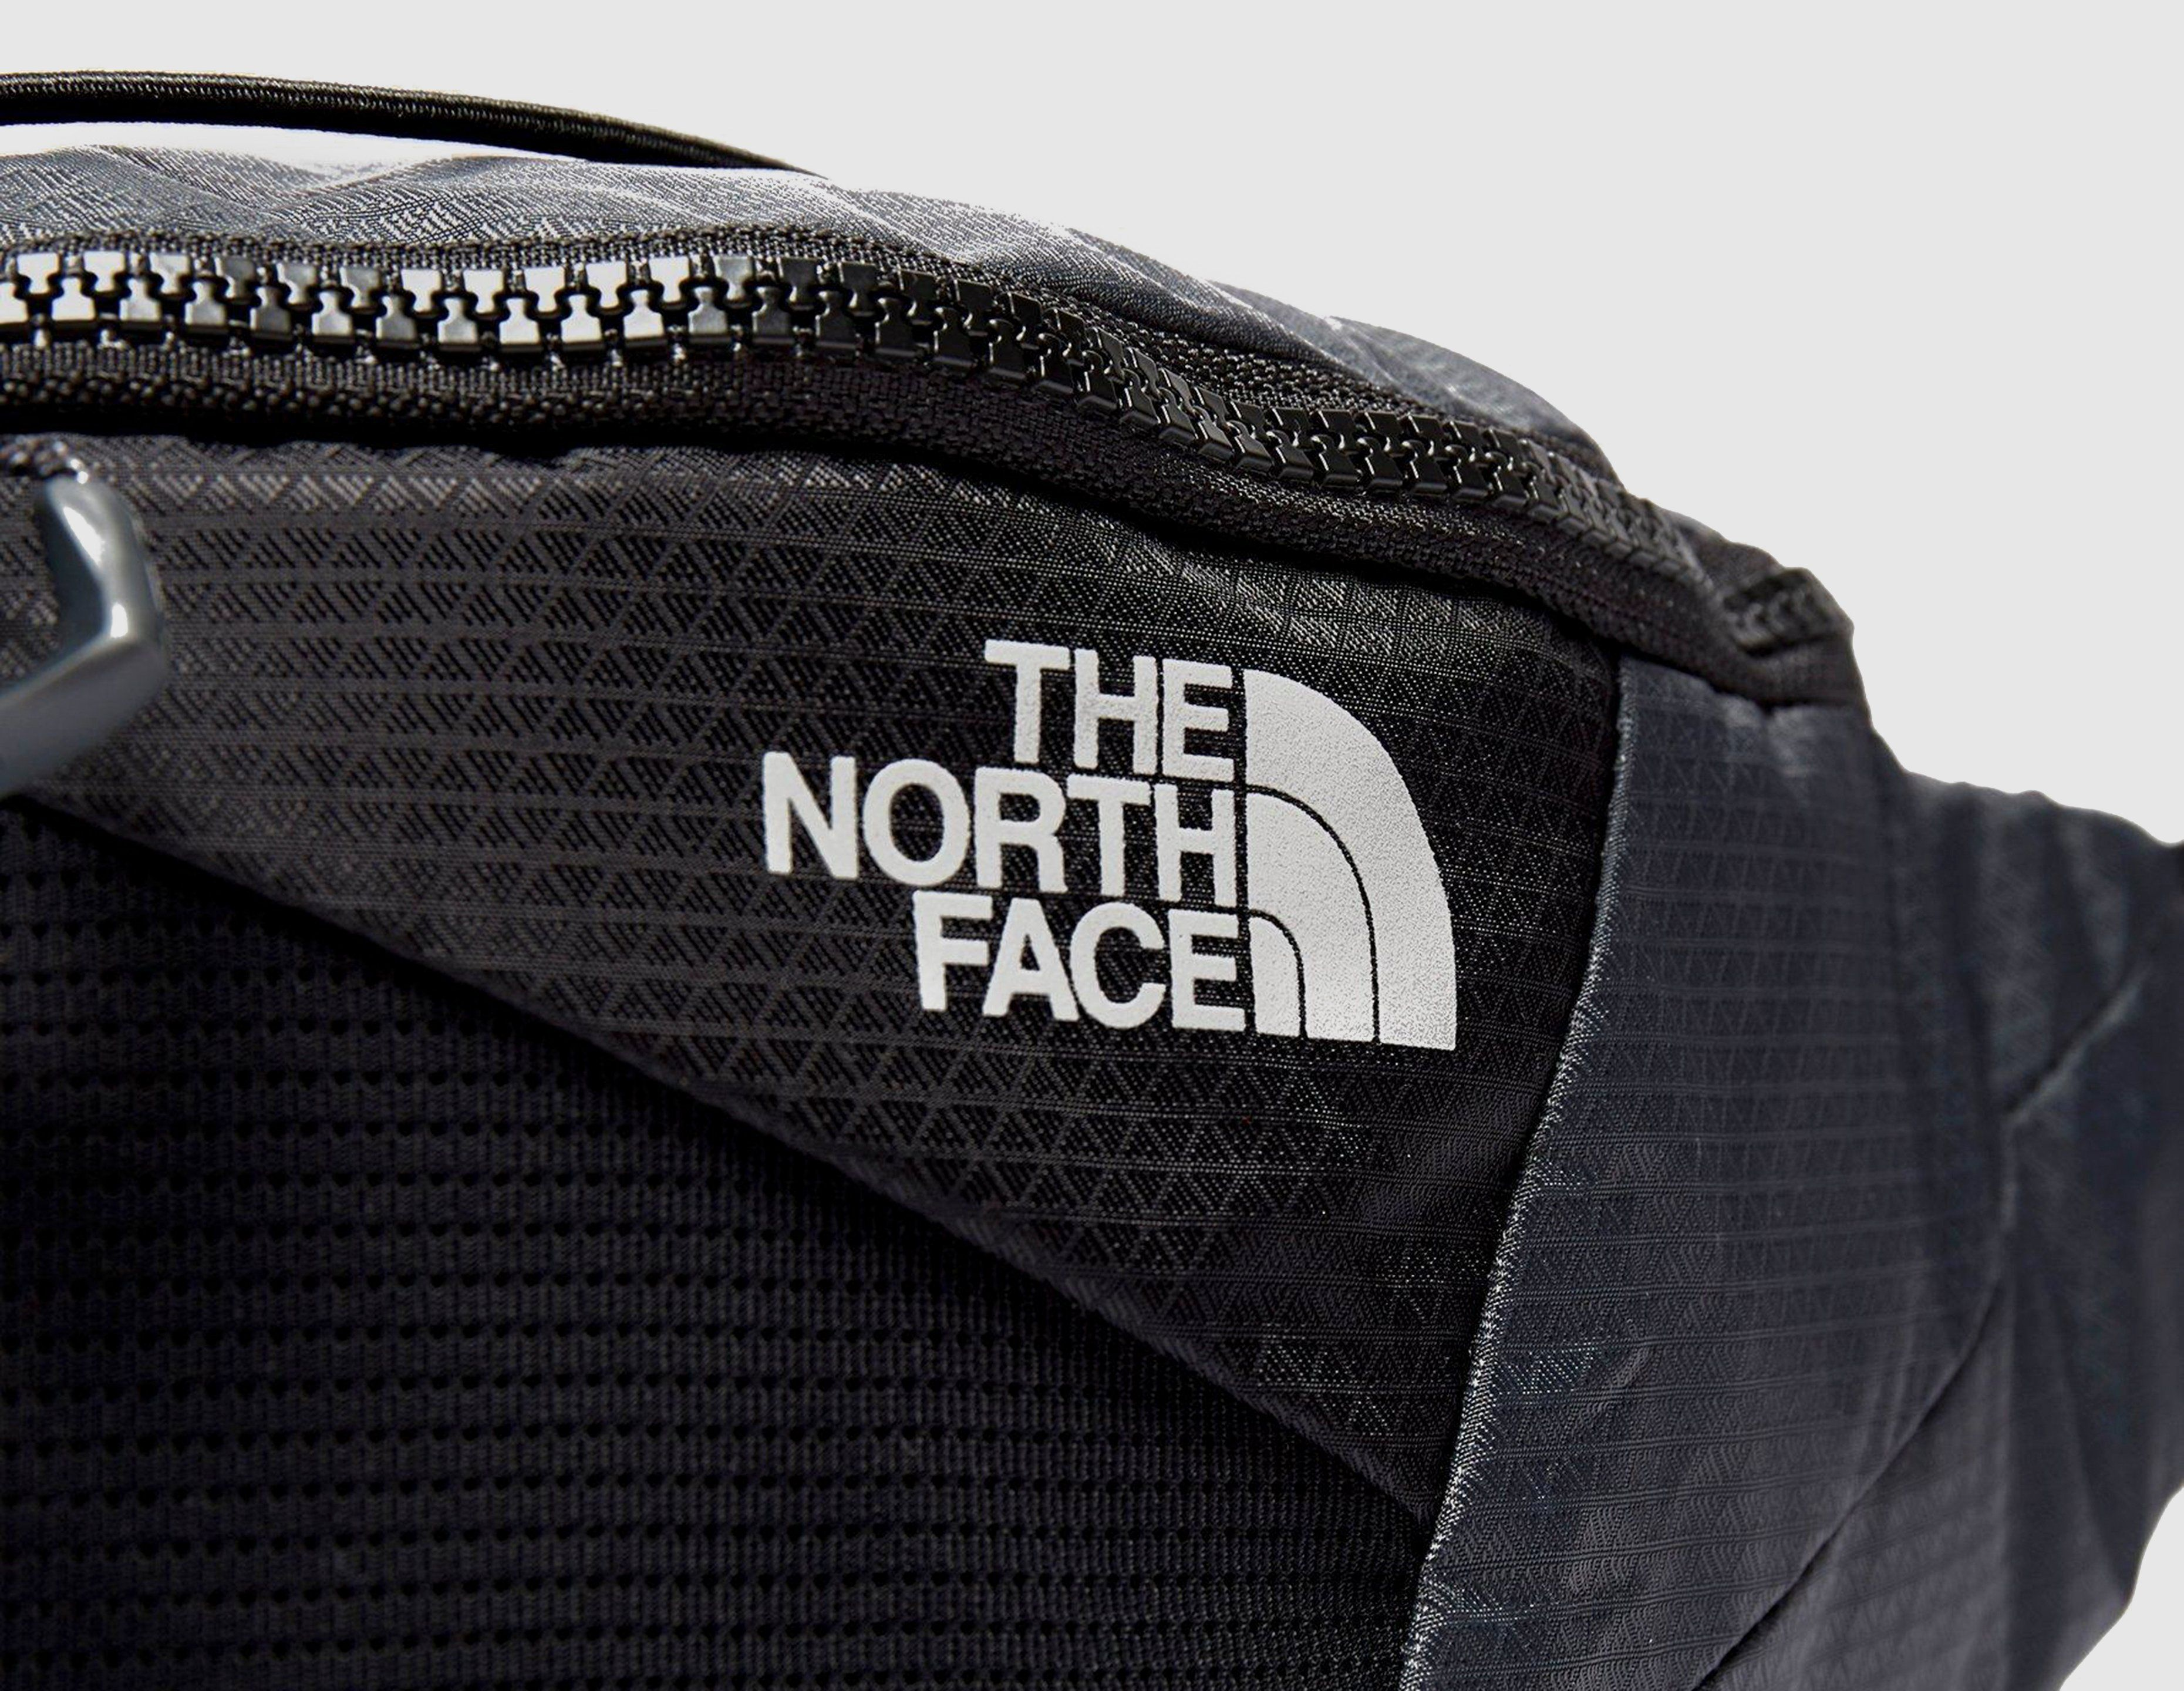 The North Face Lumbnical Lumbar Waist Pack